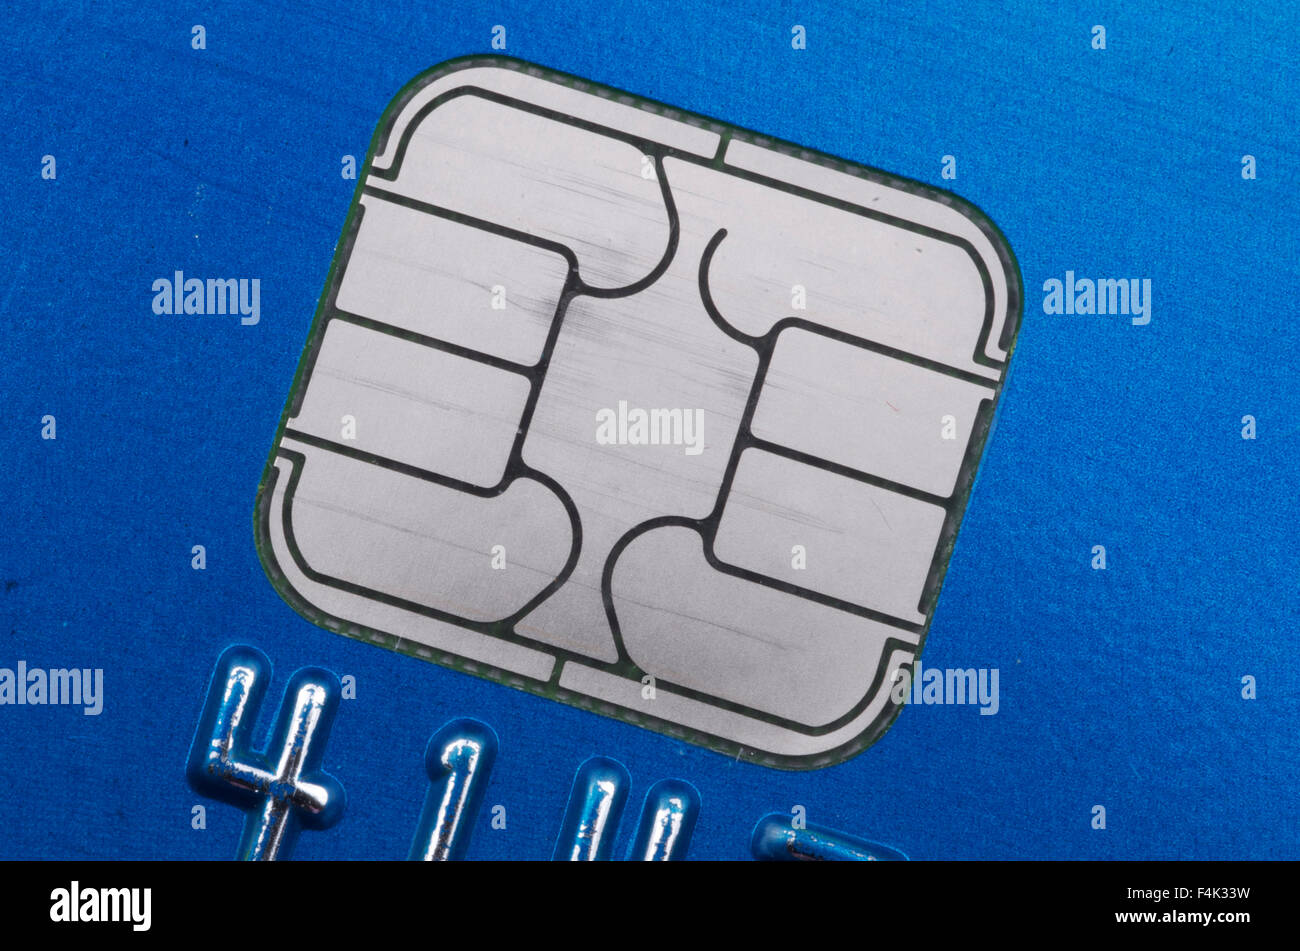 E M V Credit Card Computer Chip - Stock Image